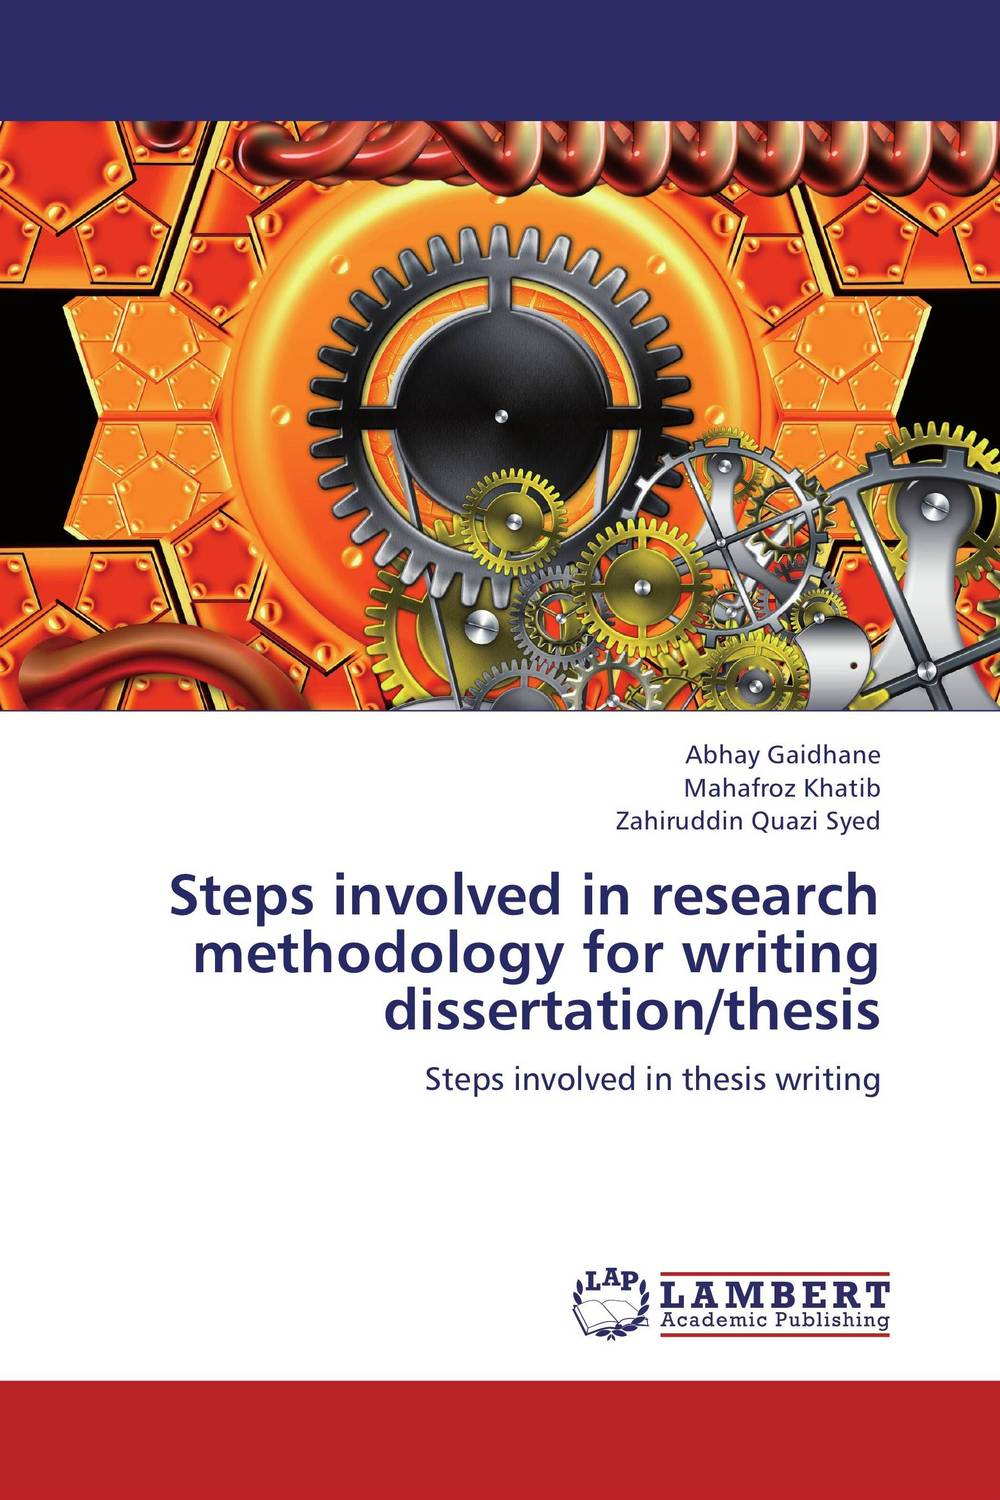 Steps involved in research methodology for writing dissertation/thesis